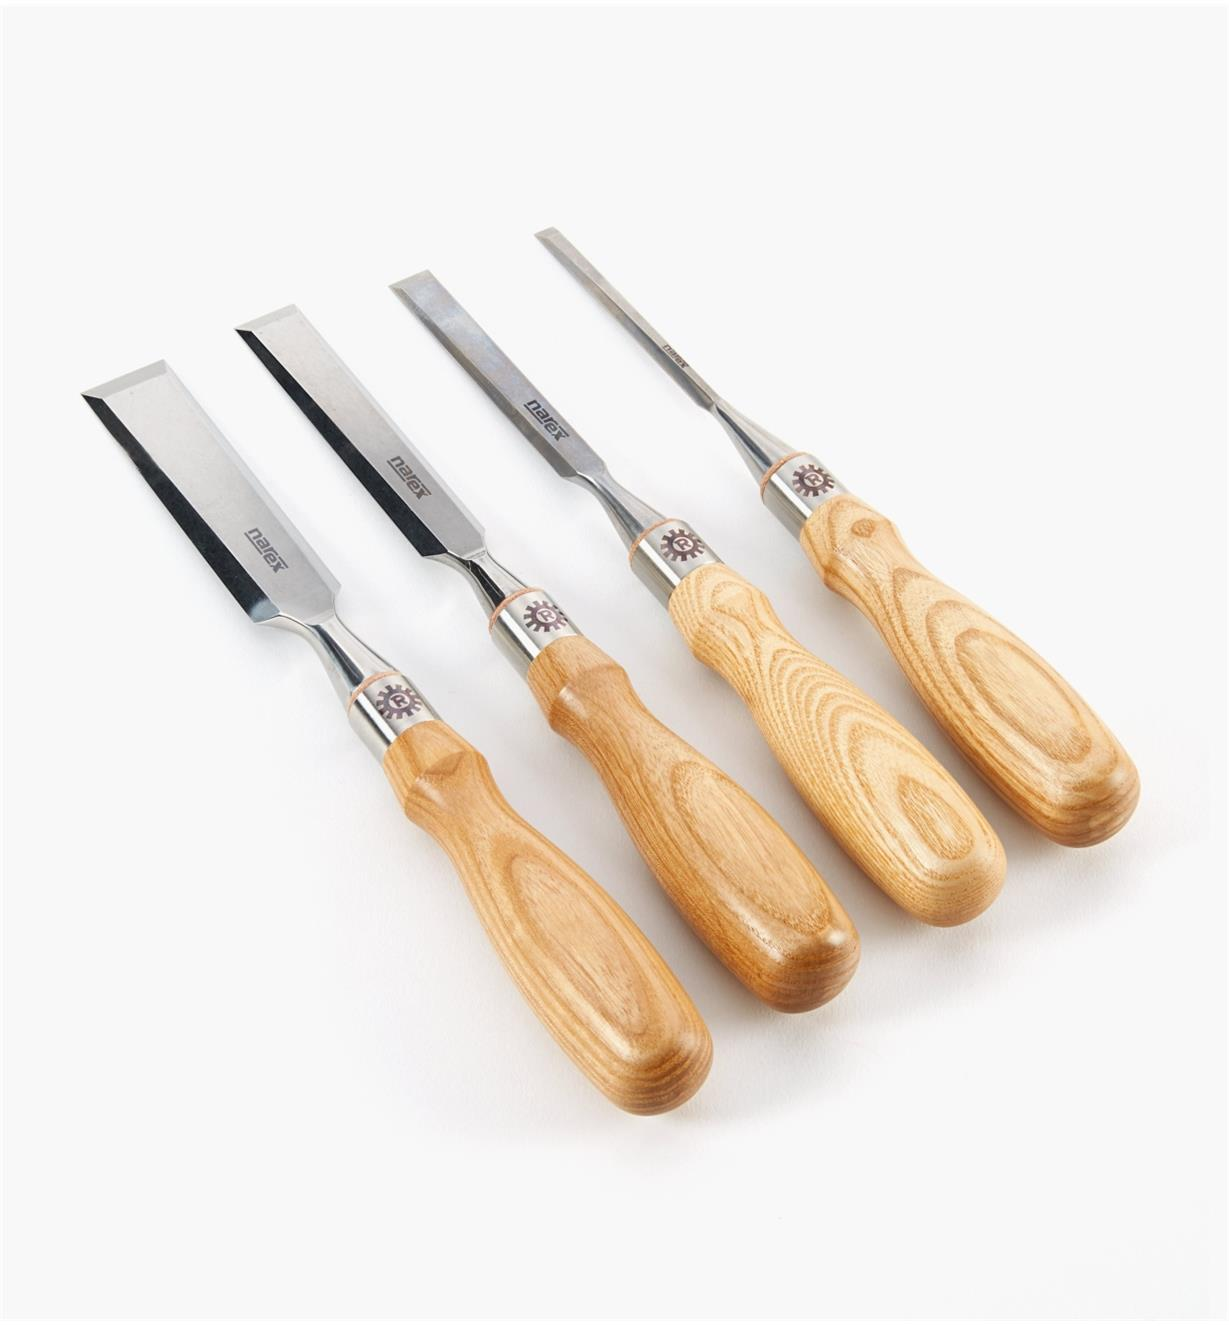 "10S1125 - Set of 4 Narex Richter Chisels (1/4"", 1/2"", 3/4"", 1"")"